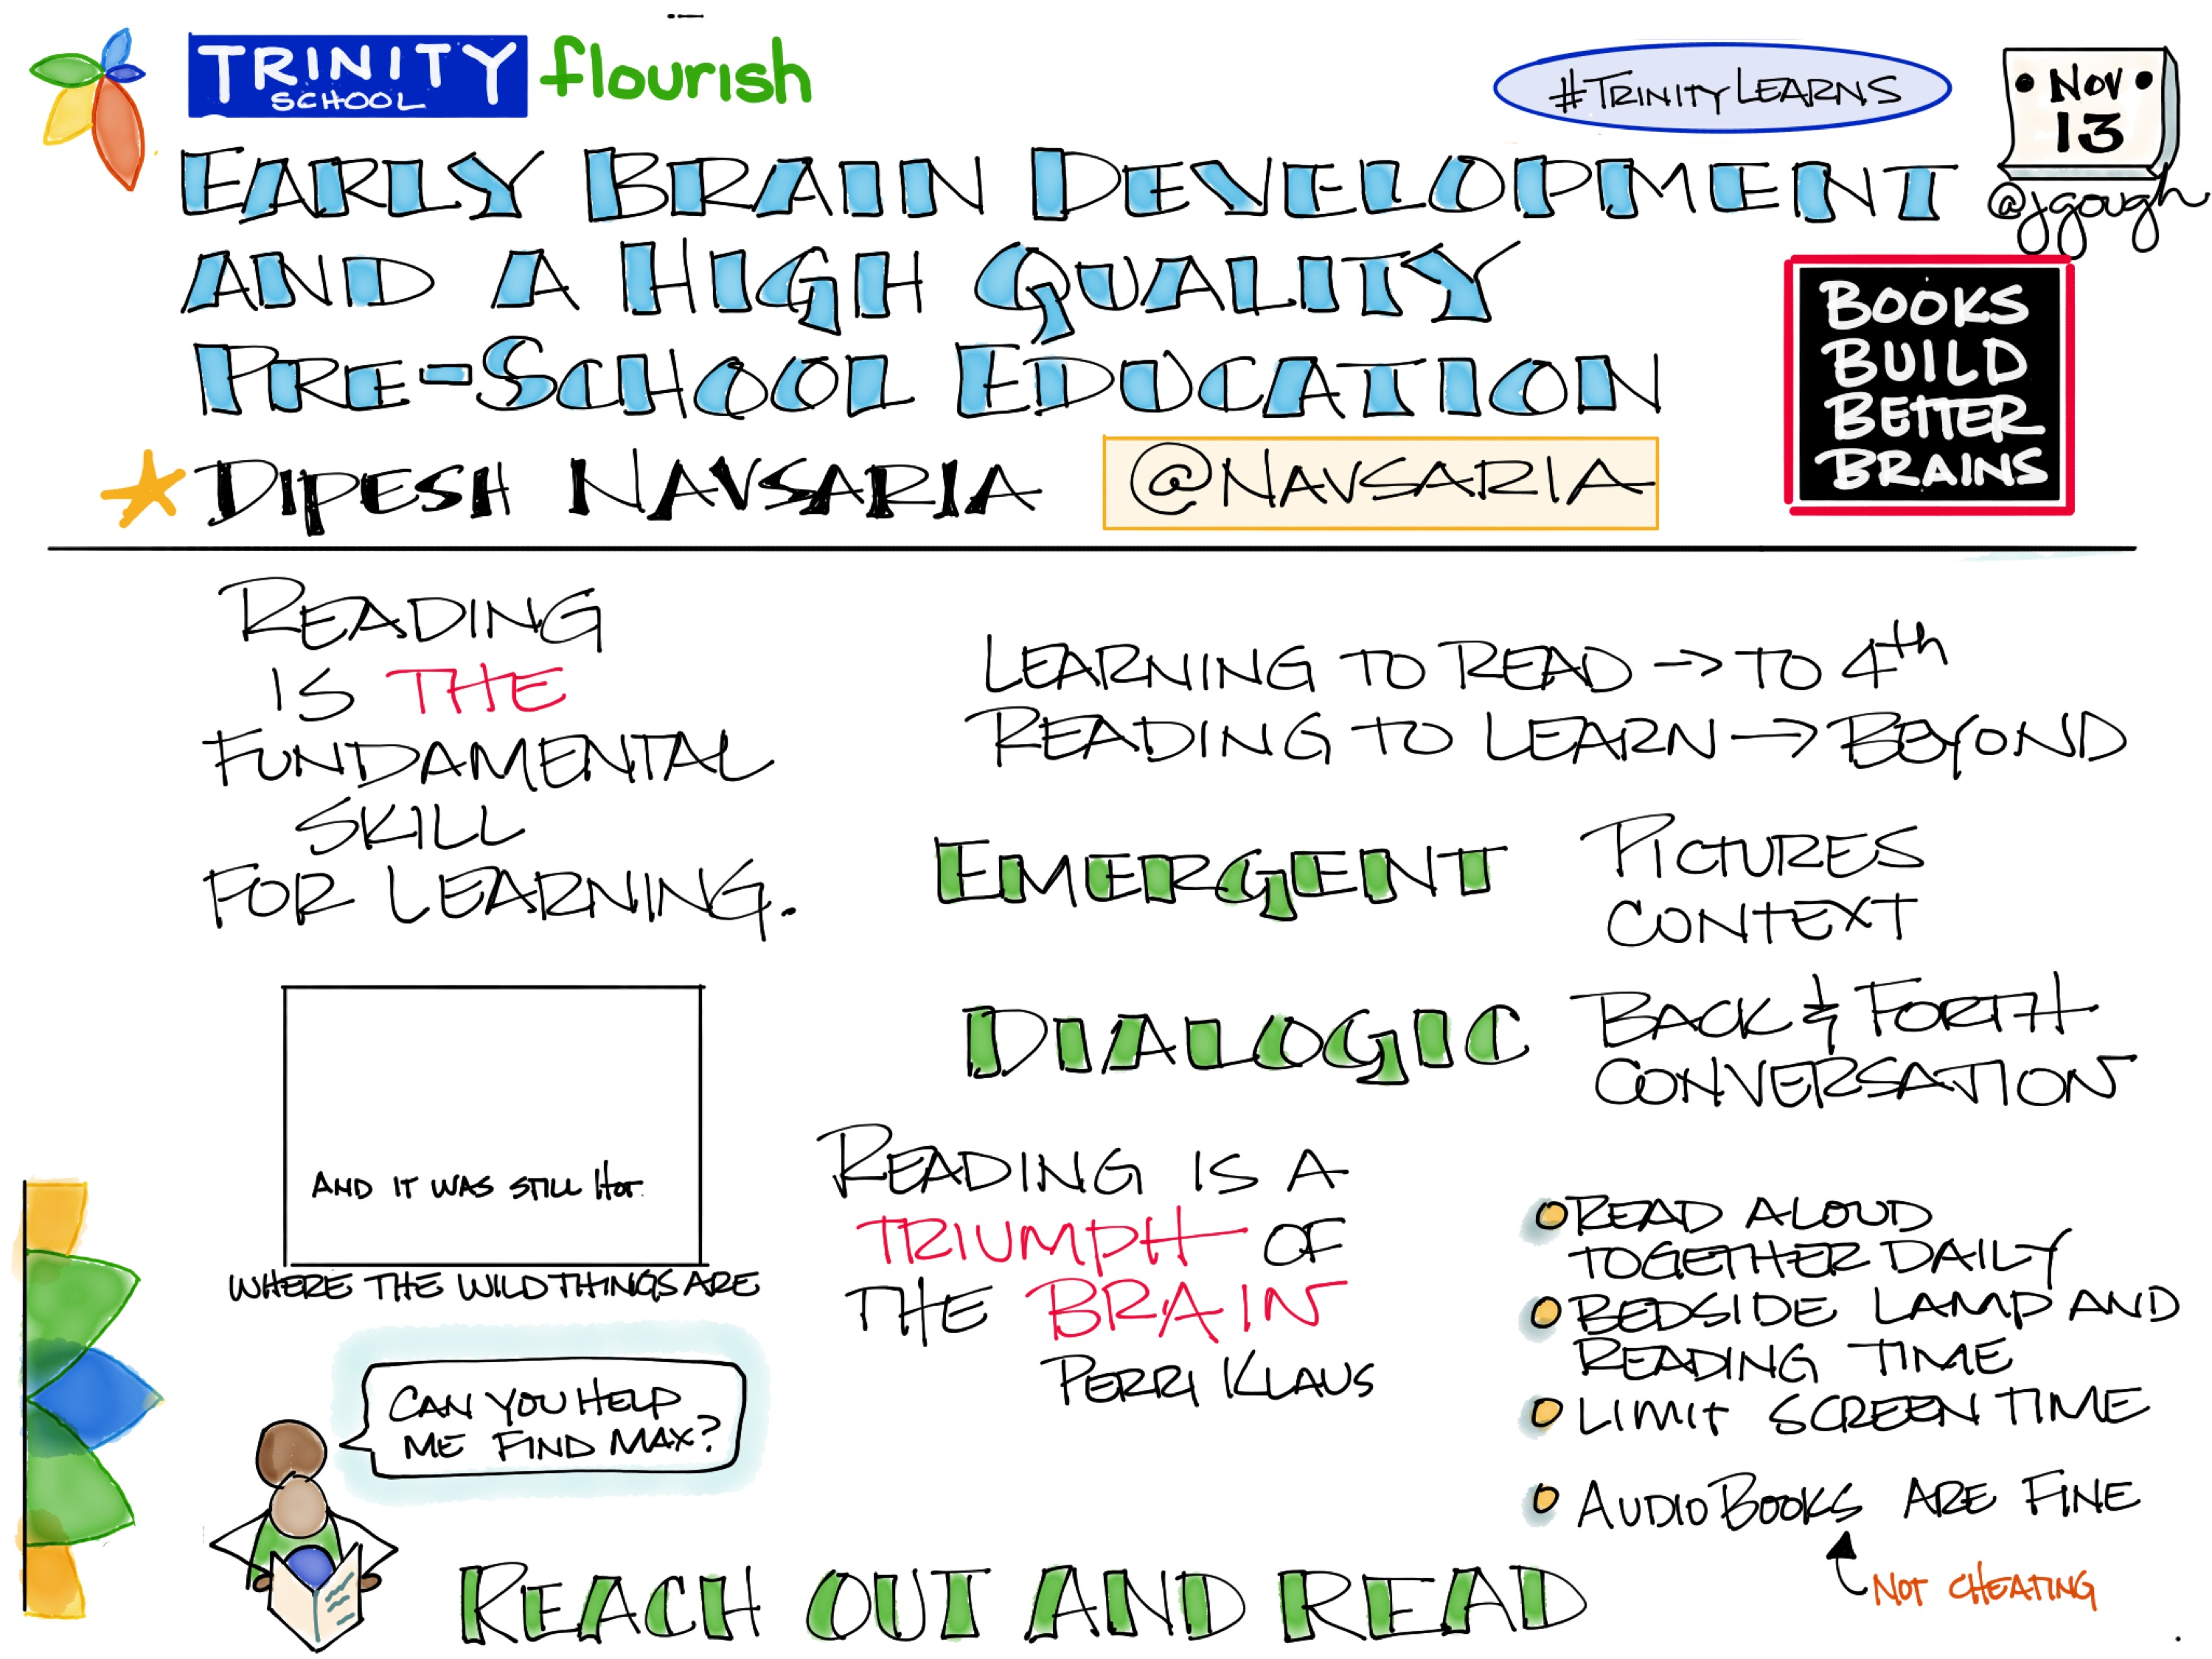 Sharing p.2 of #Sketchnotes from @Navsaria Reading is THE fundamental skill for learning. #TrinityLearns